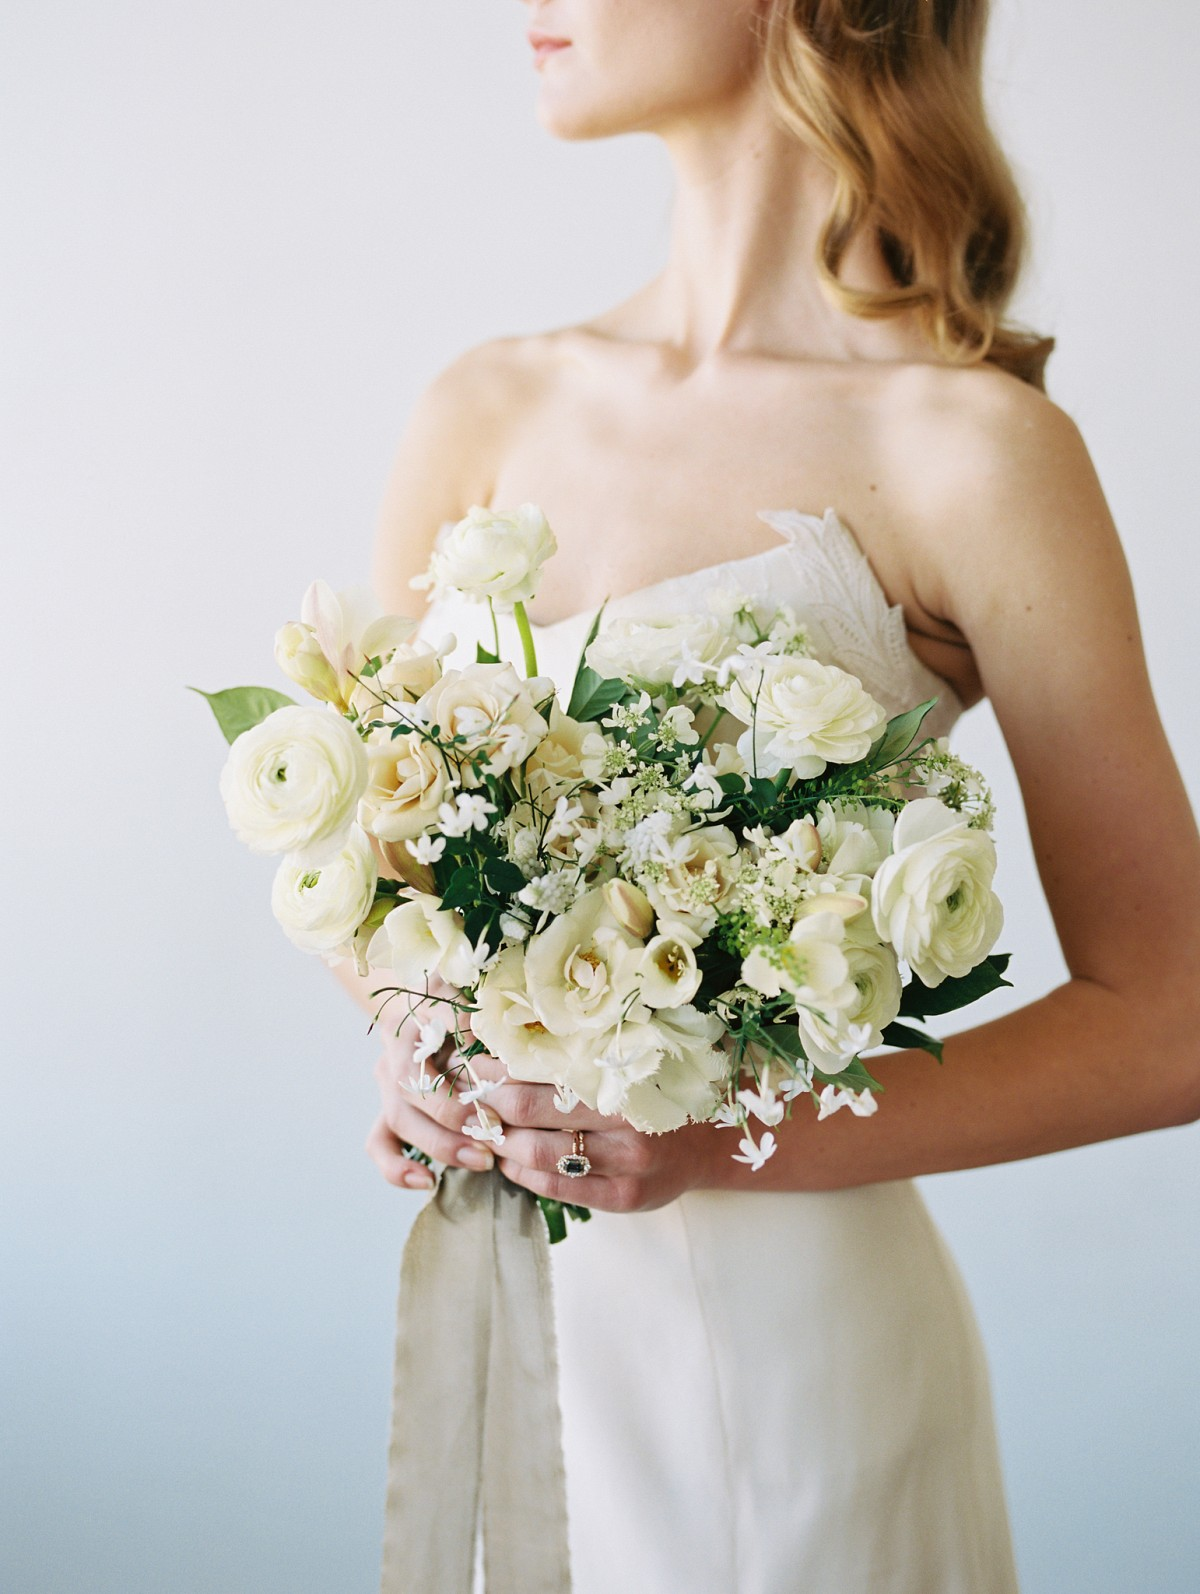 Small posey bouquet ideas